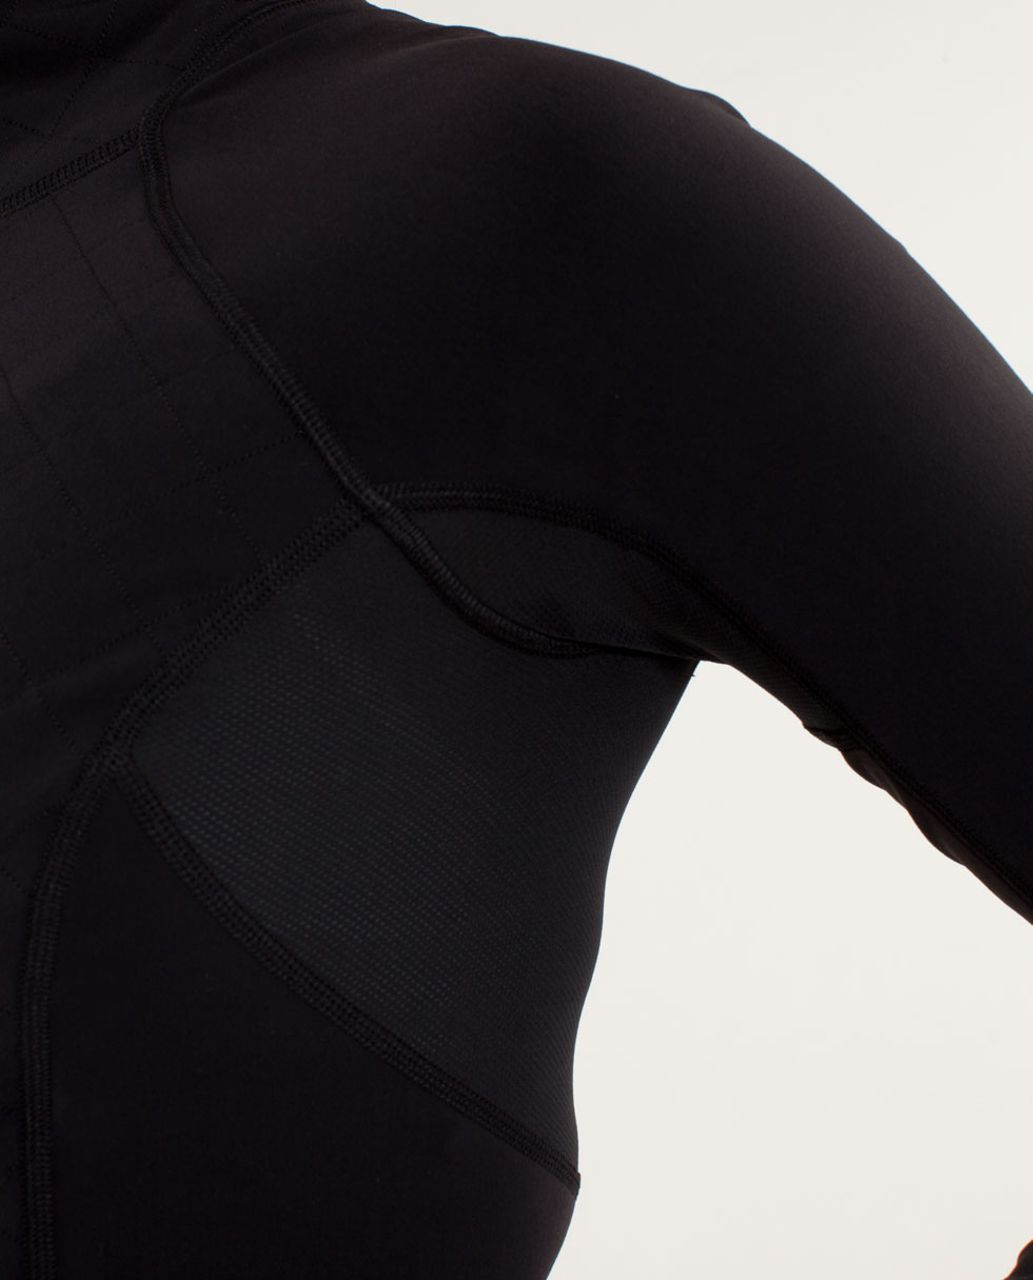 Lululemon Run:  Toasty Tech Pullover - Black